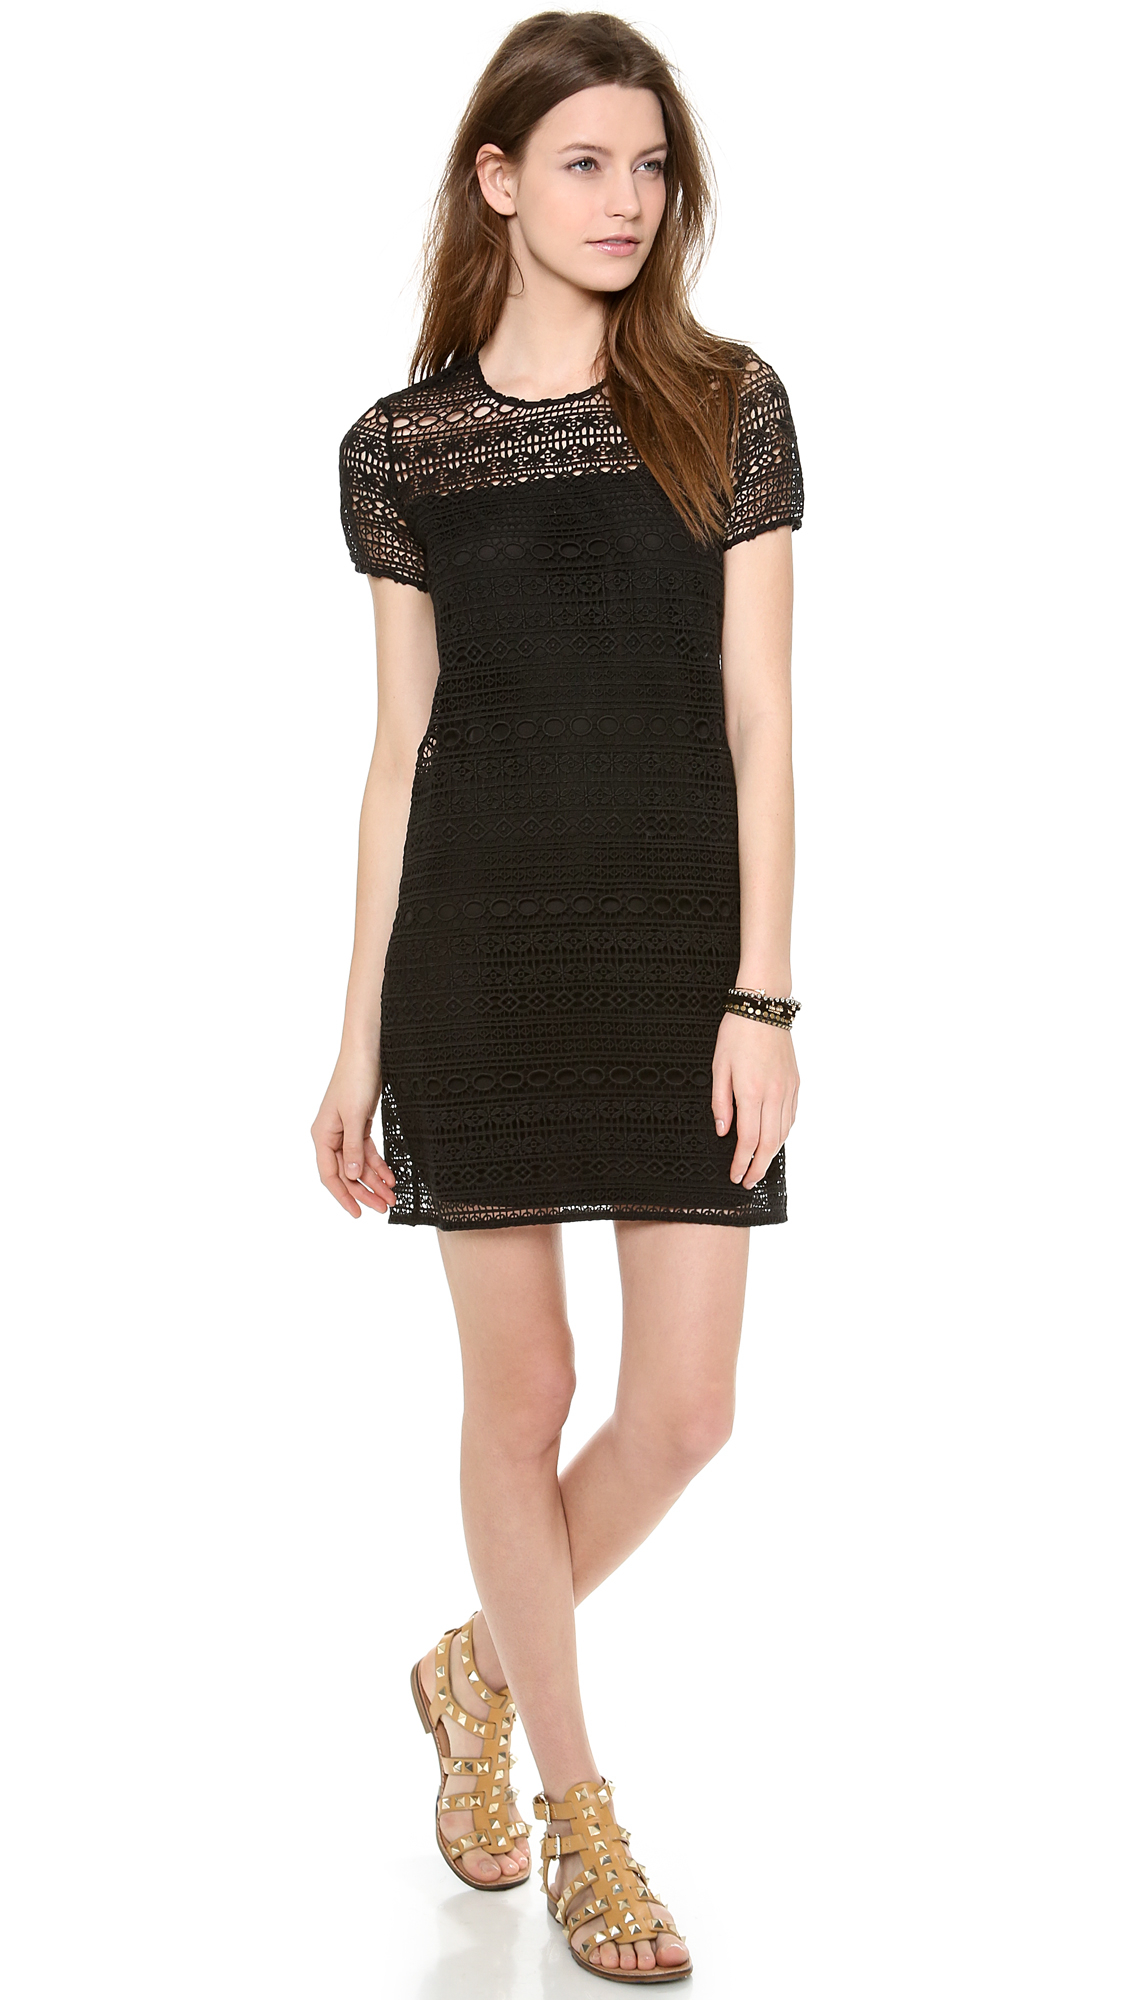 Lyst - Juicy Couture Linear Lace Guipure Dress in Black